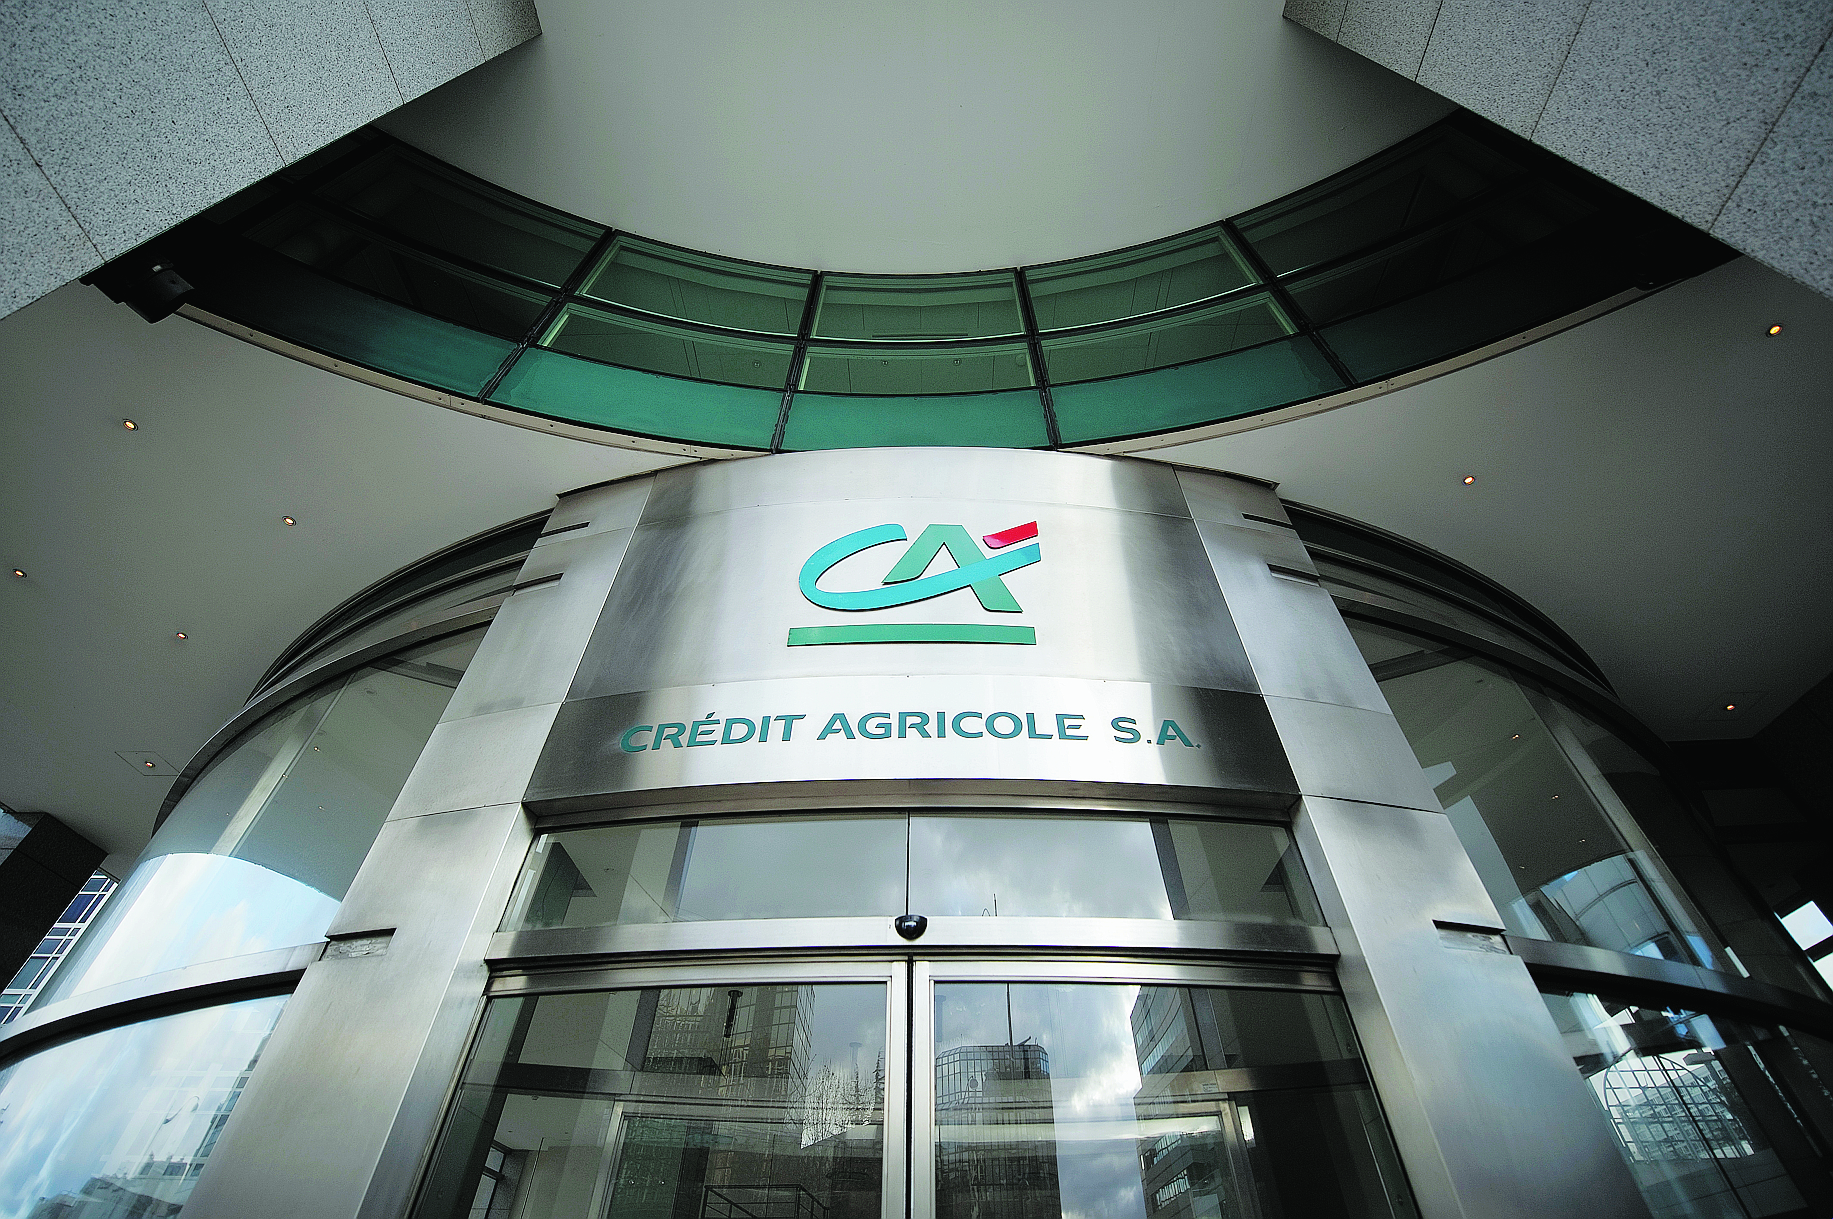 boyanov-co-advised-on-the-sale-of-100-of-the-capital-of-credit-agricole-bulgaria-ead